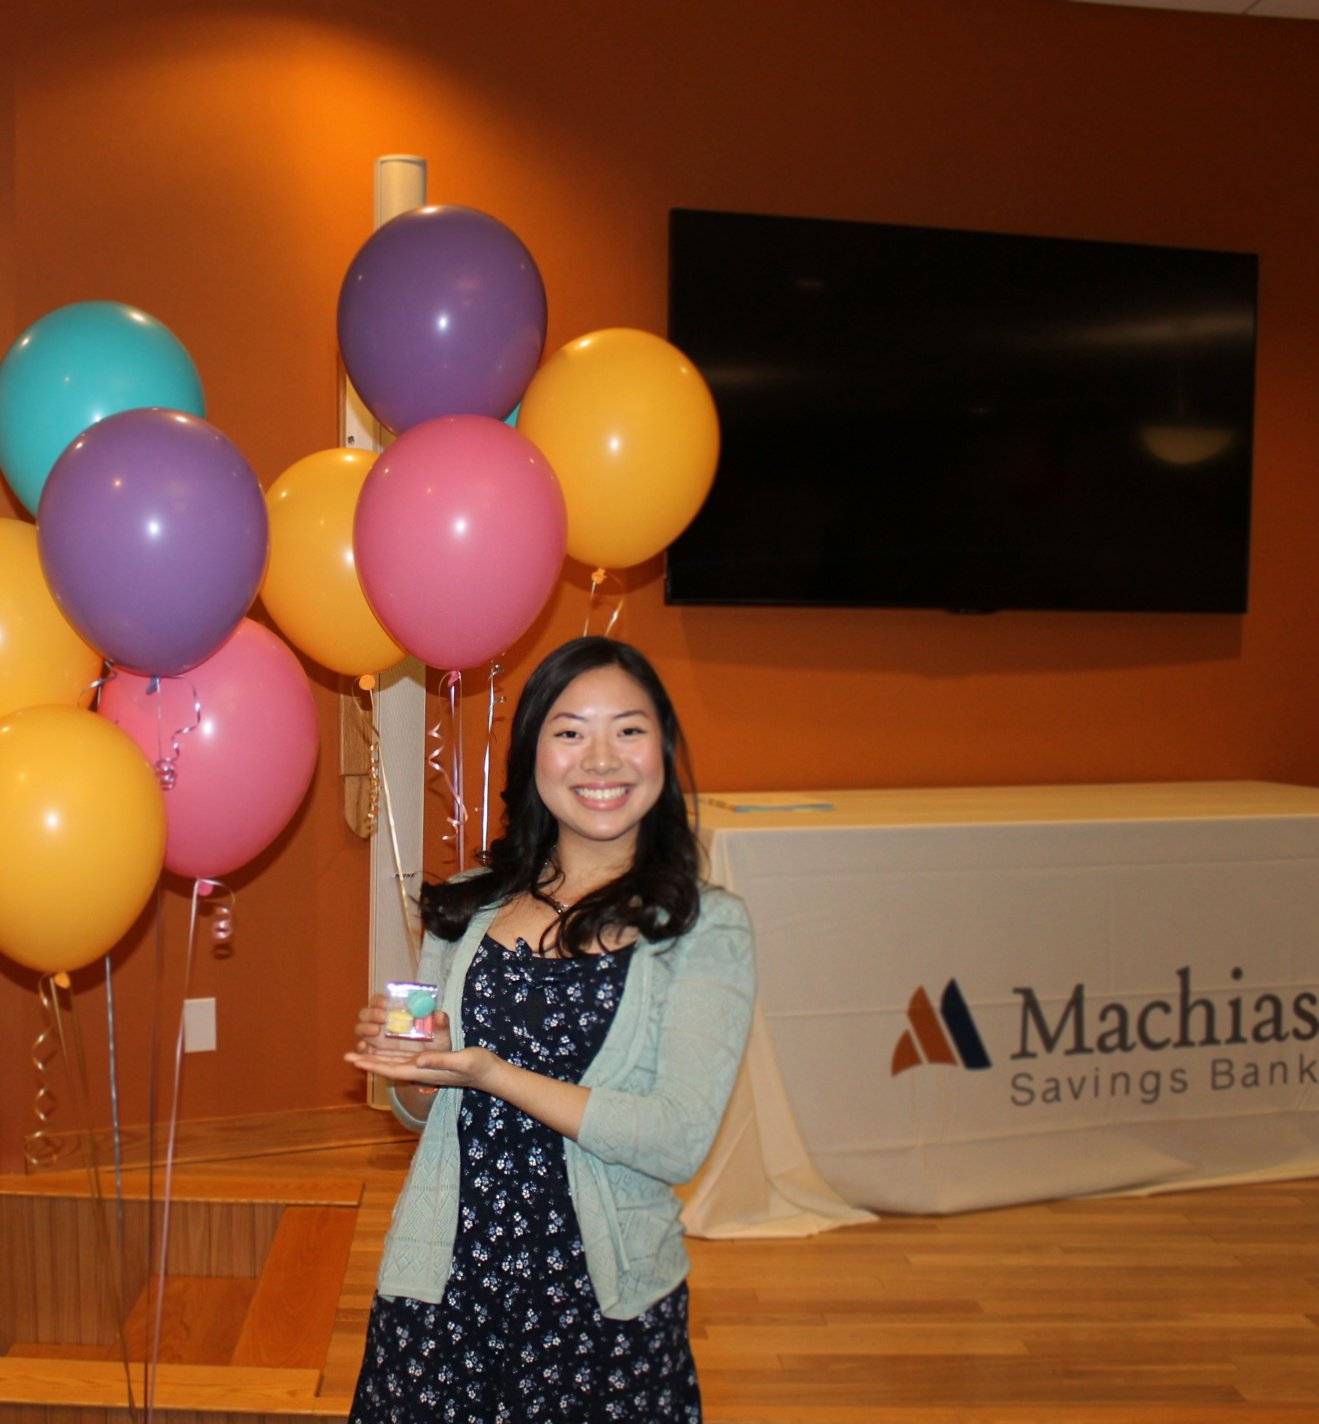 Jaelin after delivering her keynote speech at the Future Promises Awards Banquet at Machias Savings Bank in Machias.